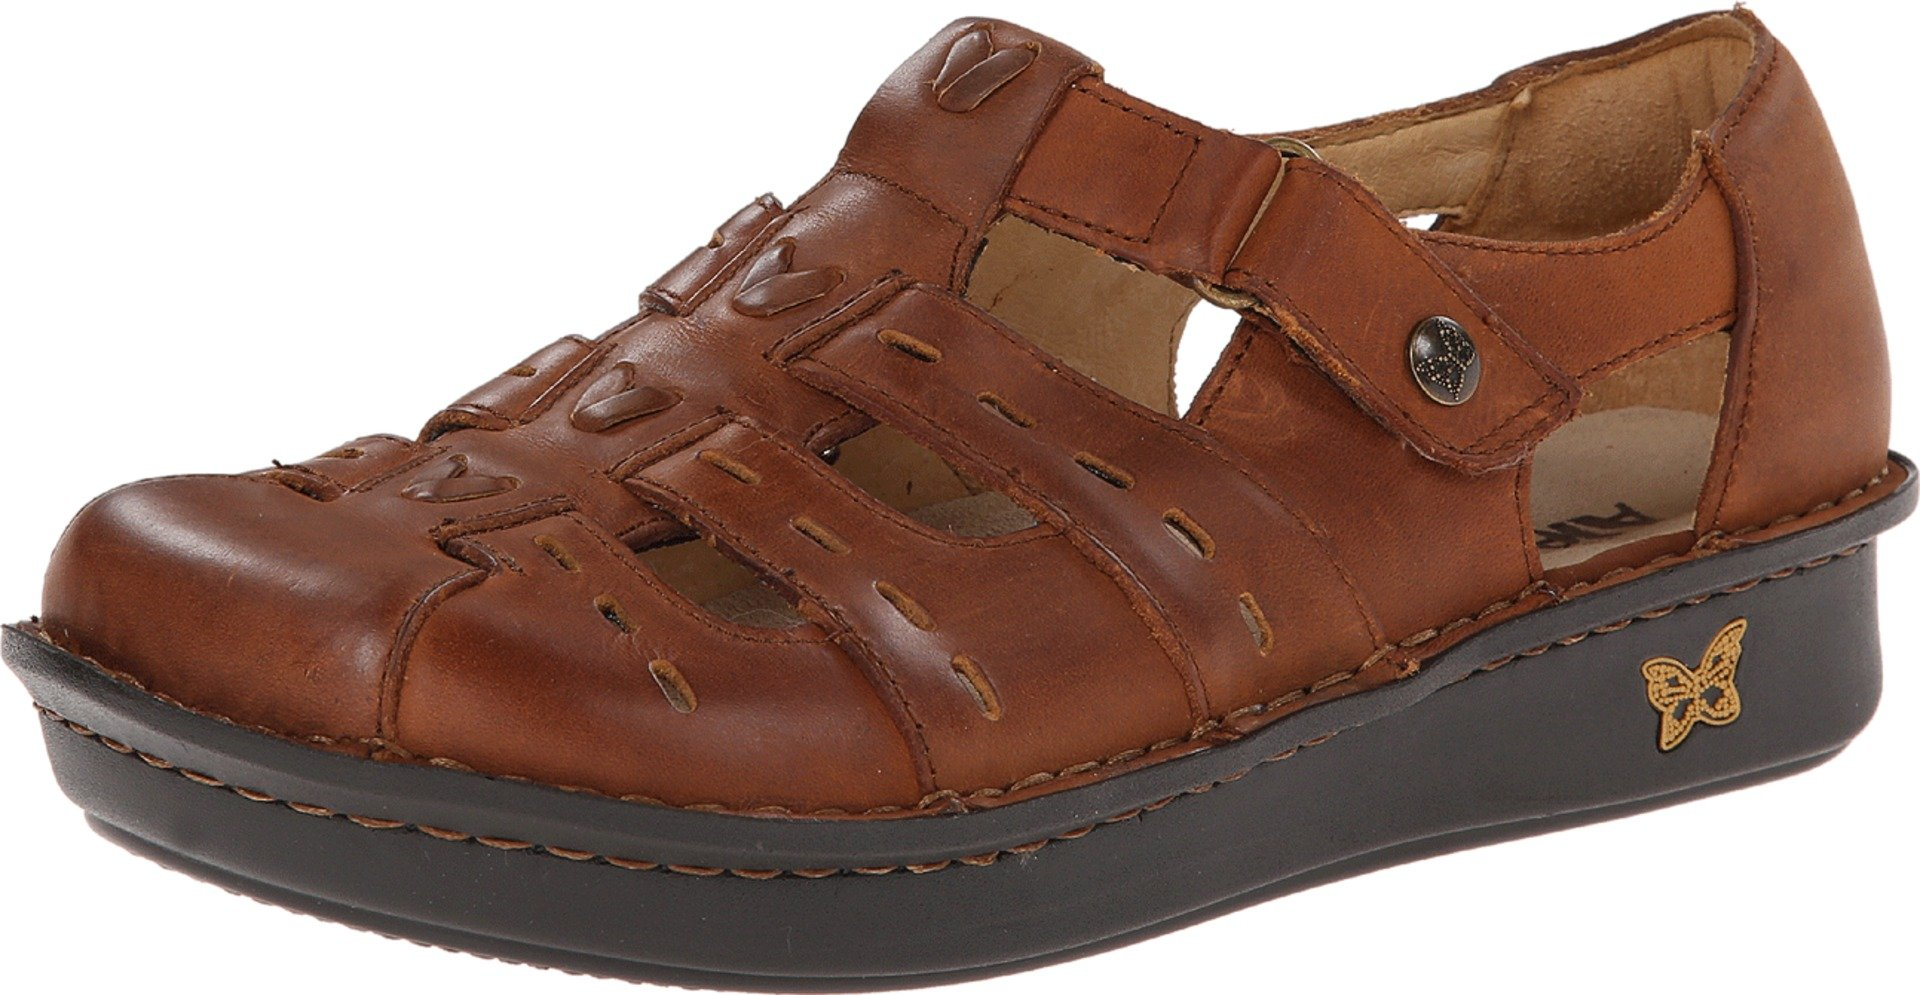 Alegria Women's Pesca Tawny Clog/Mule 39 (US Women's 9-9.5) Regular